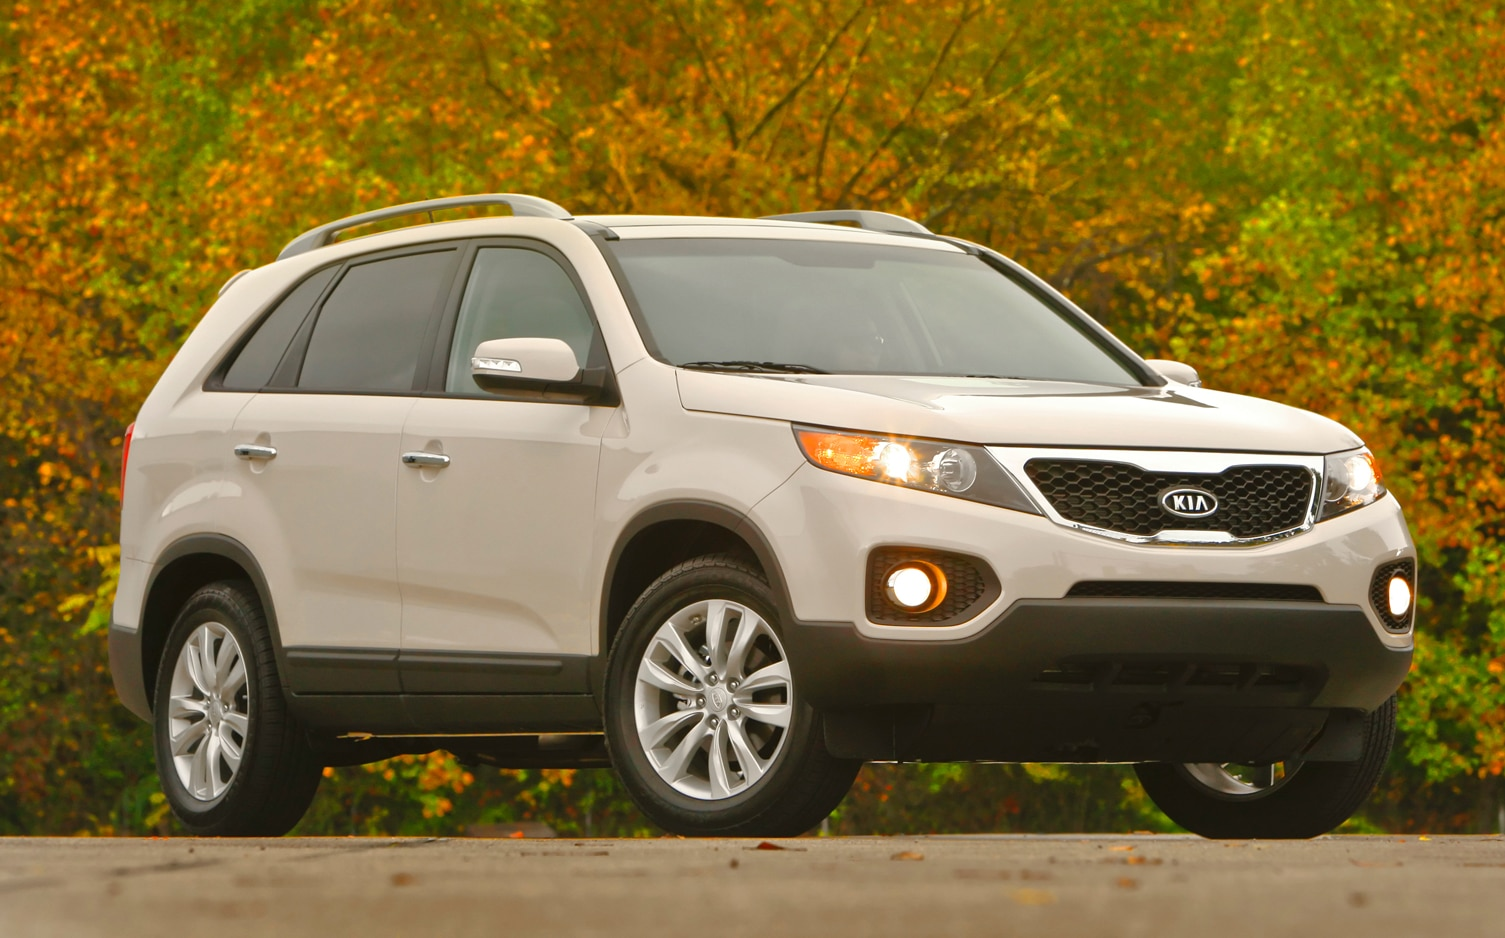 2012 Kia Sorento Front Right Side View 6